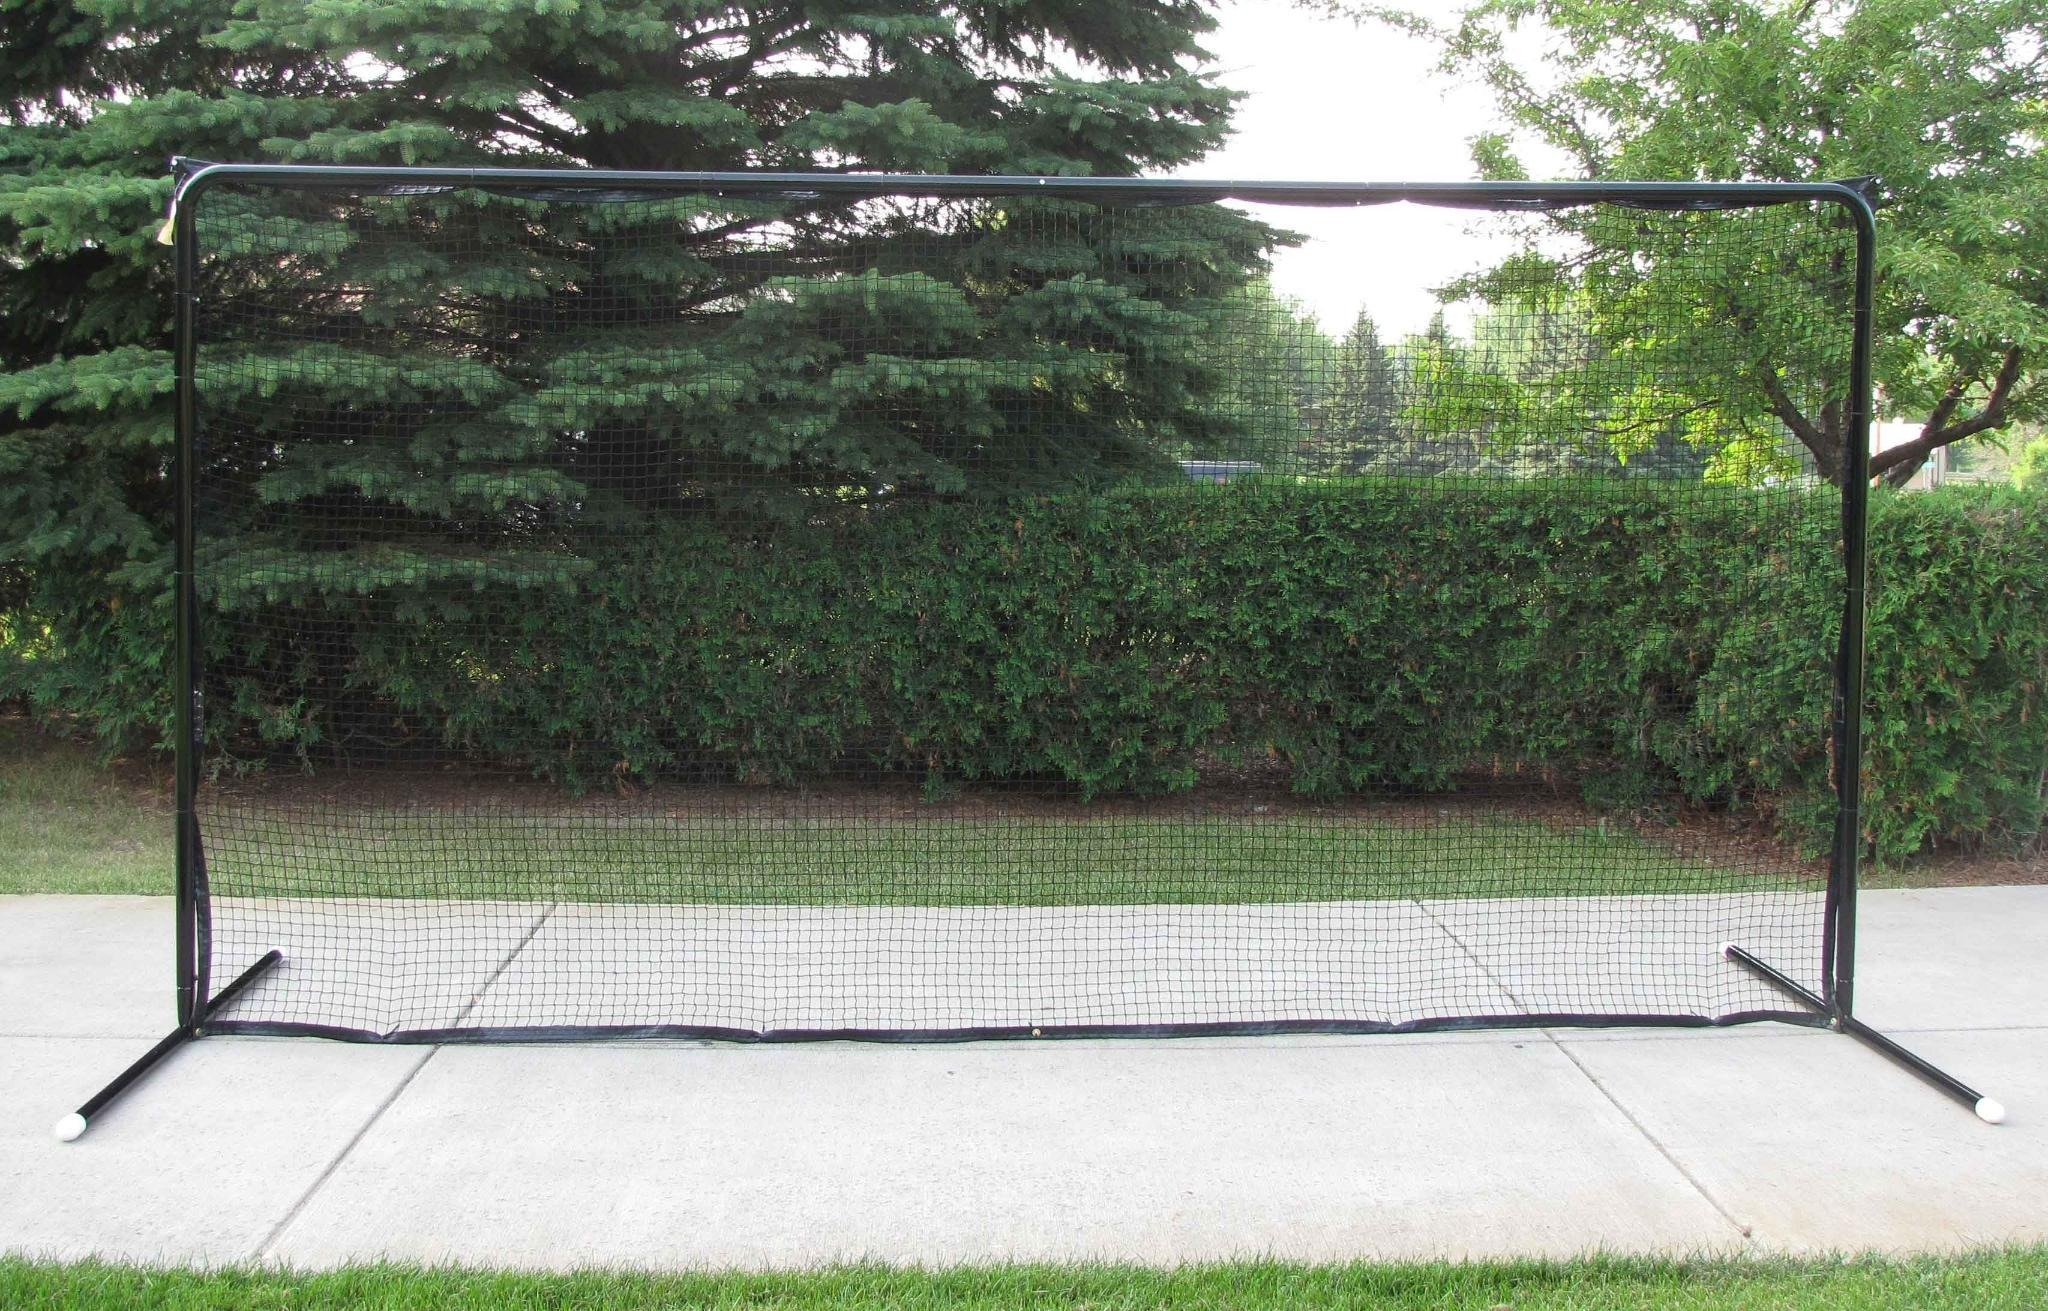 14.5' x 7.5' Straight, Self-Standing, 2-Pole Steel Backstop with Premium Black Powder-Coated Finish; Great for Containing Balls and Pucks in Your Backyard.